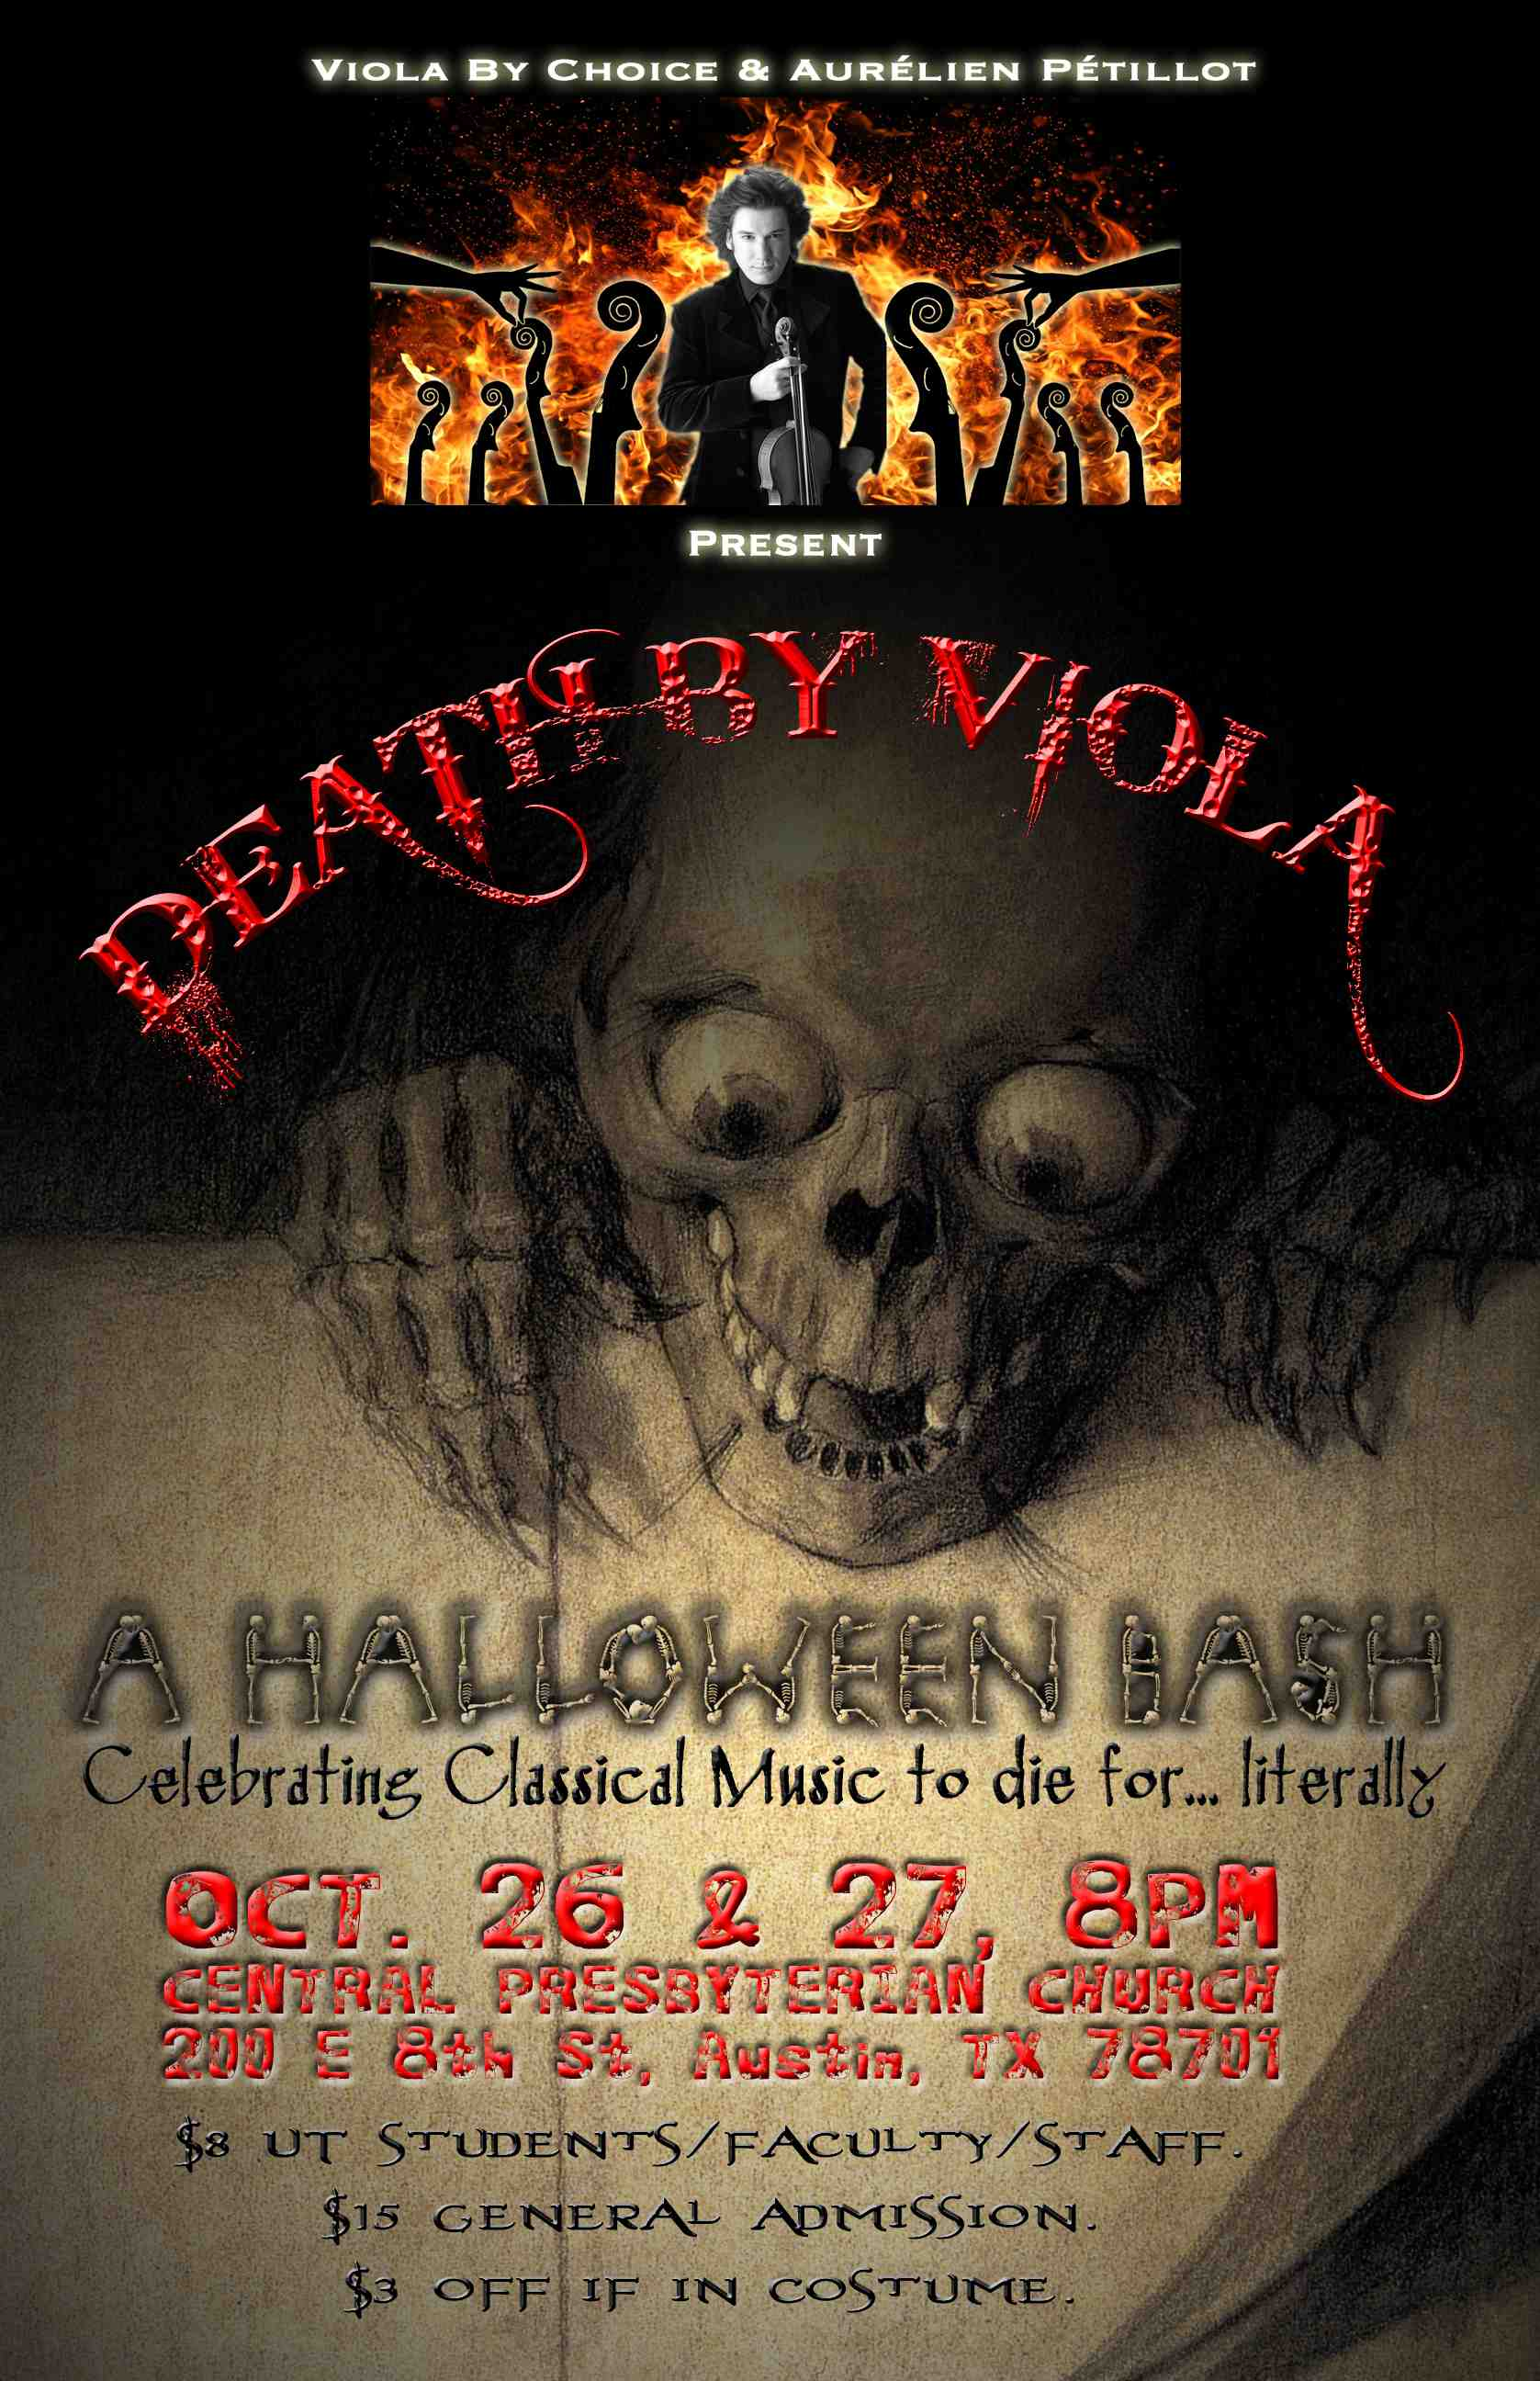 Death by Viola: A Halloween Bash